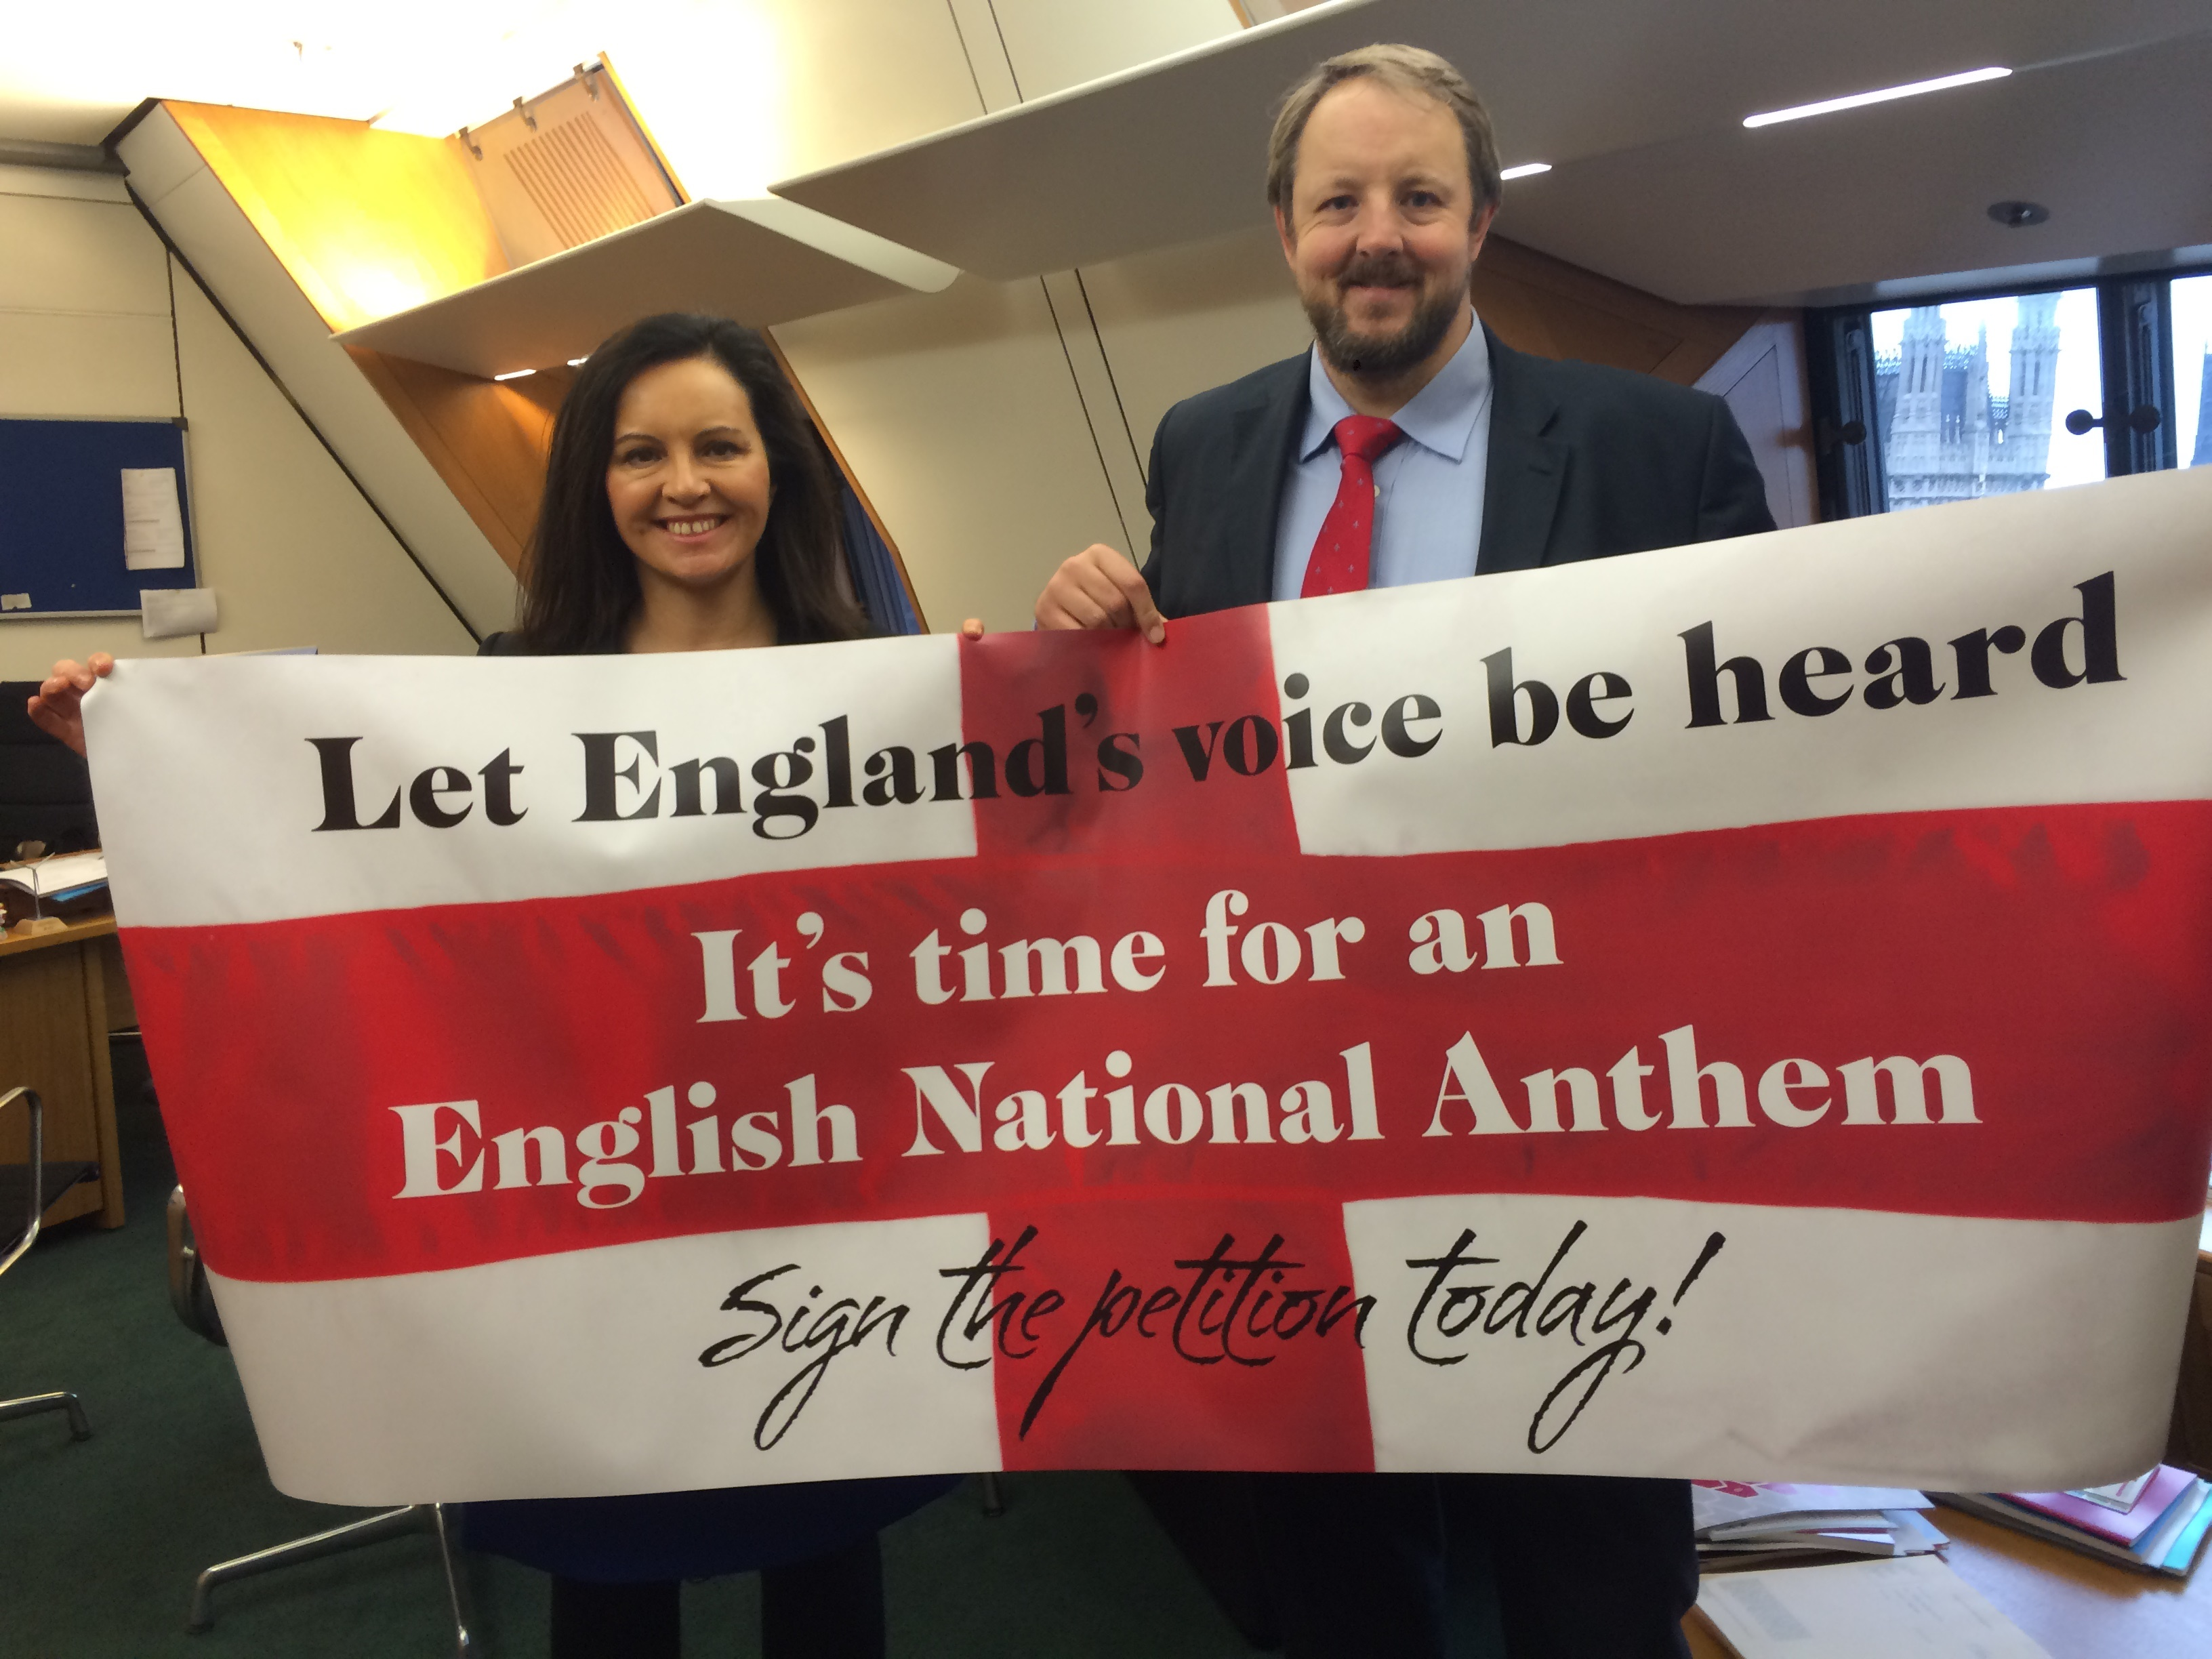 English_anthem_launch_-_Caroline_Toby_a_270116.jpg